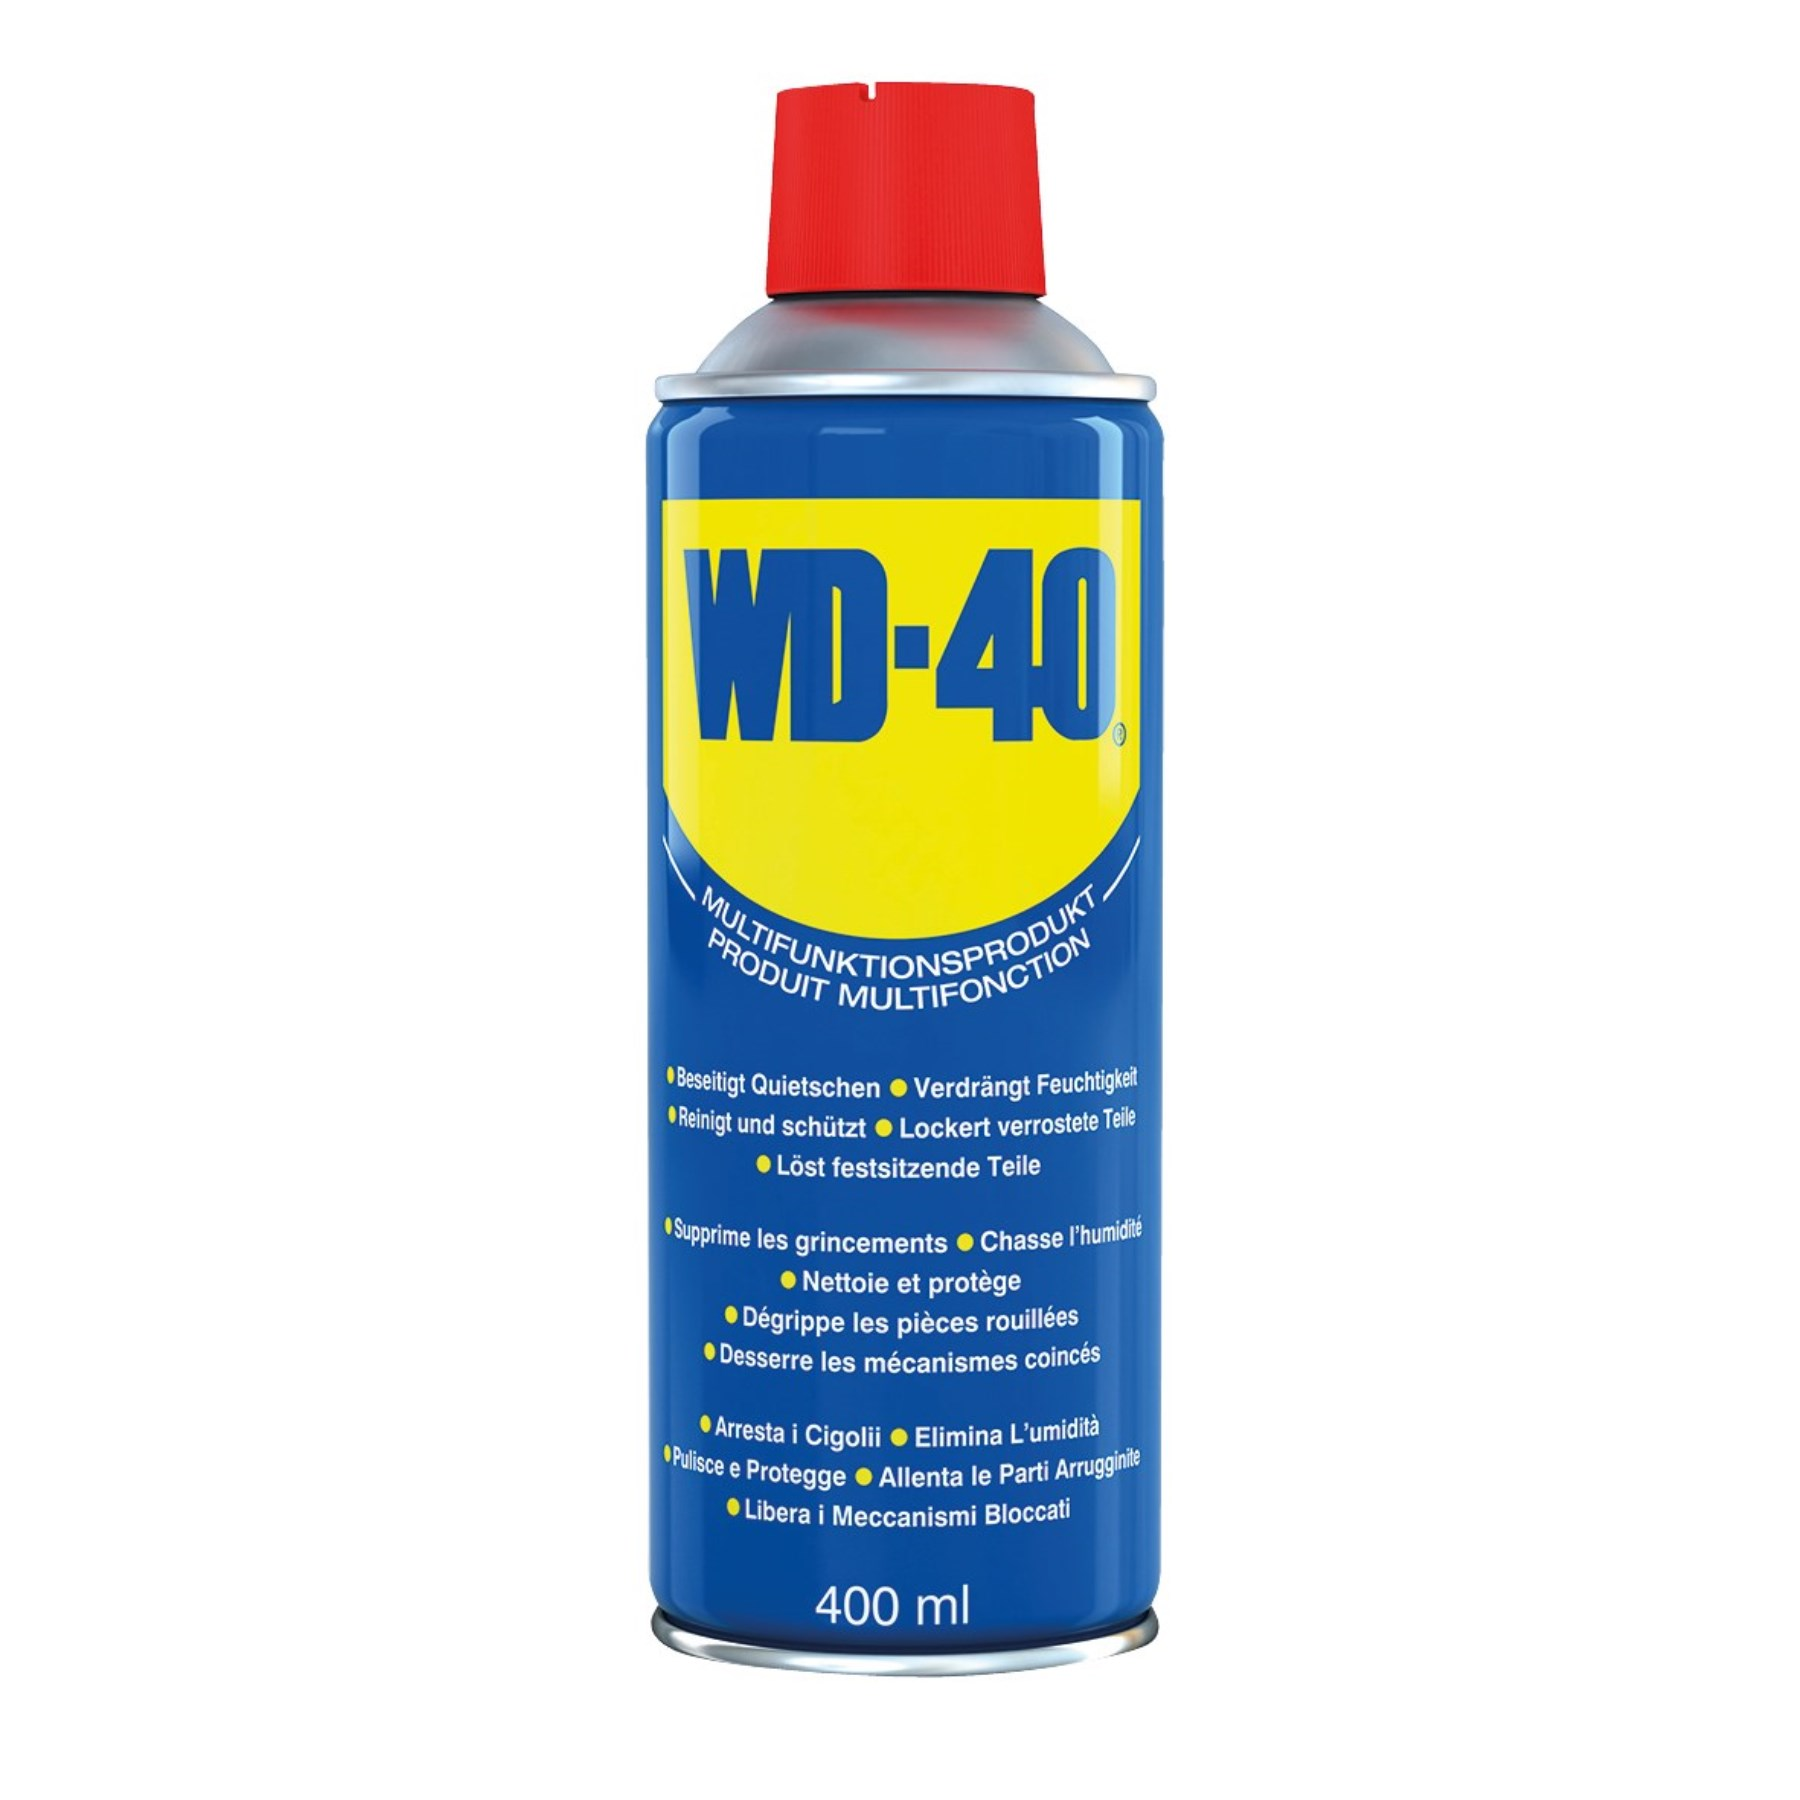 1046505 - WD-40 Multifunktionsspray